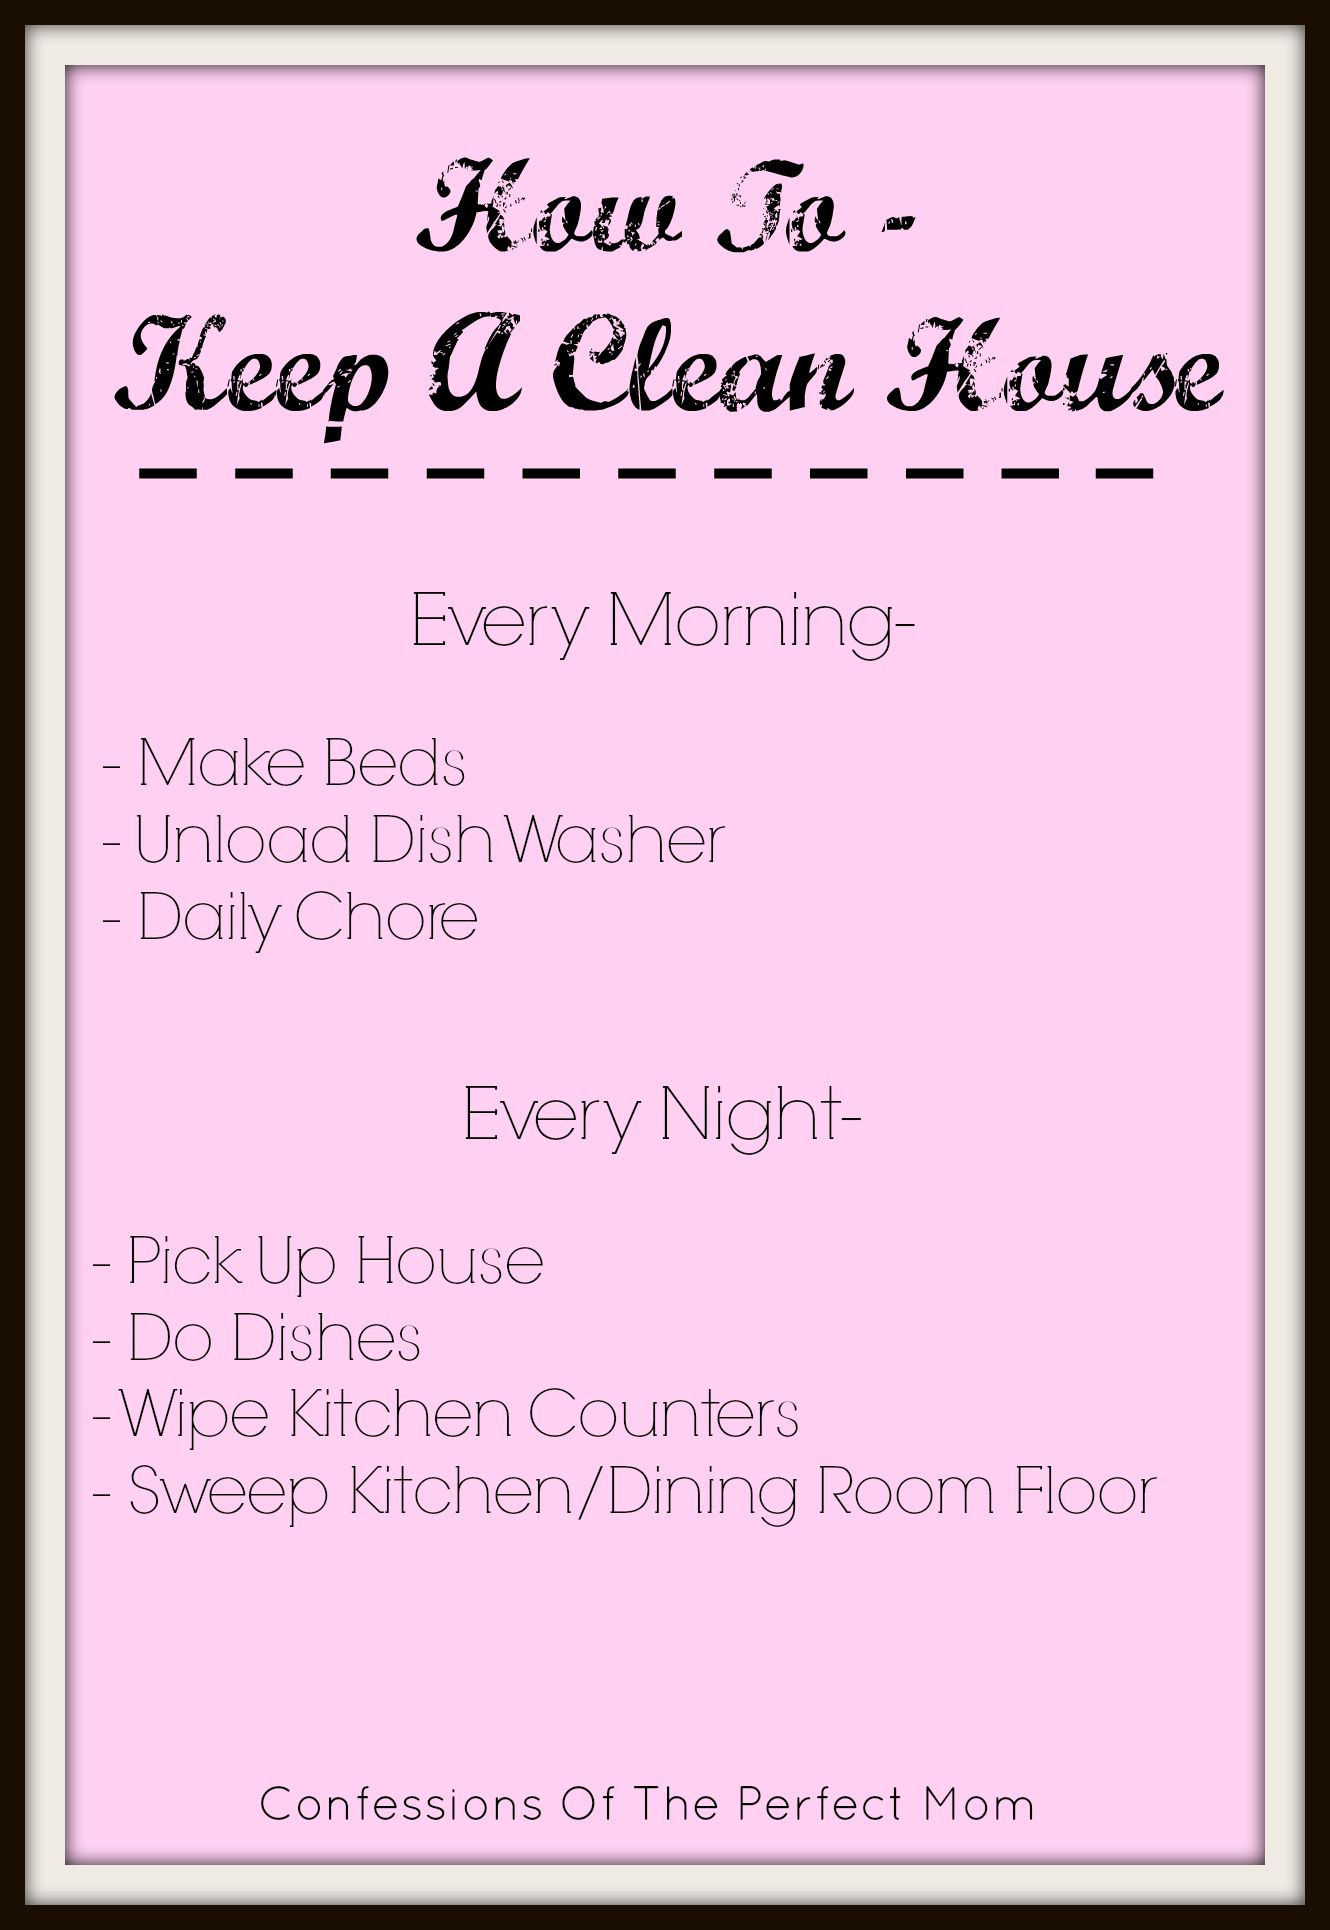 How to keep a clean house confessions of the perfect mom How to keep house clean